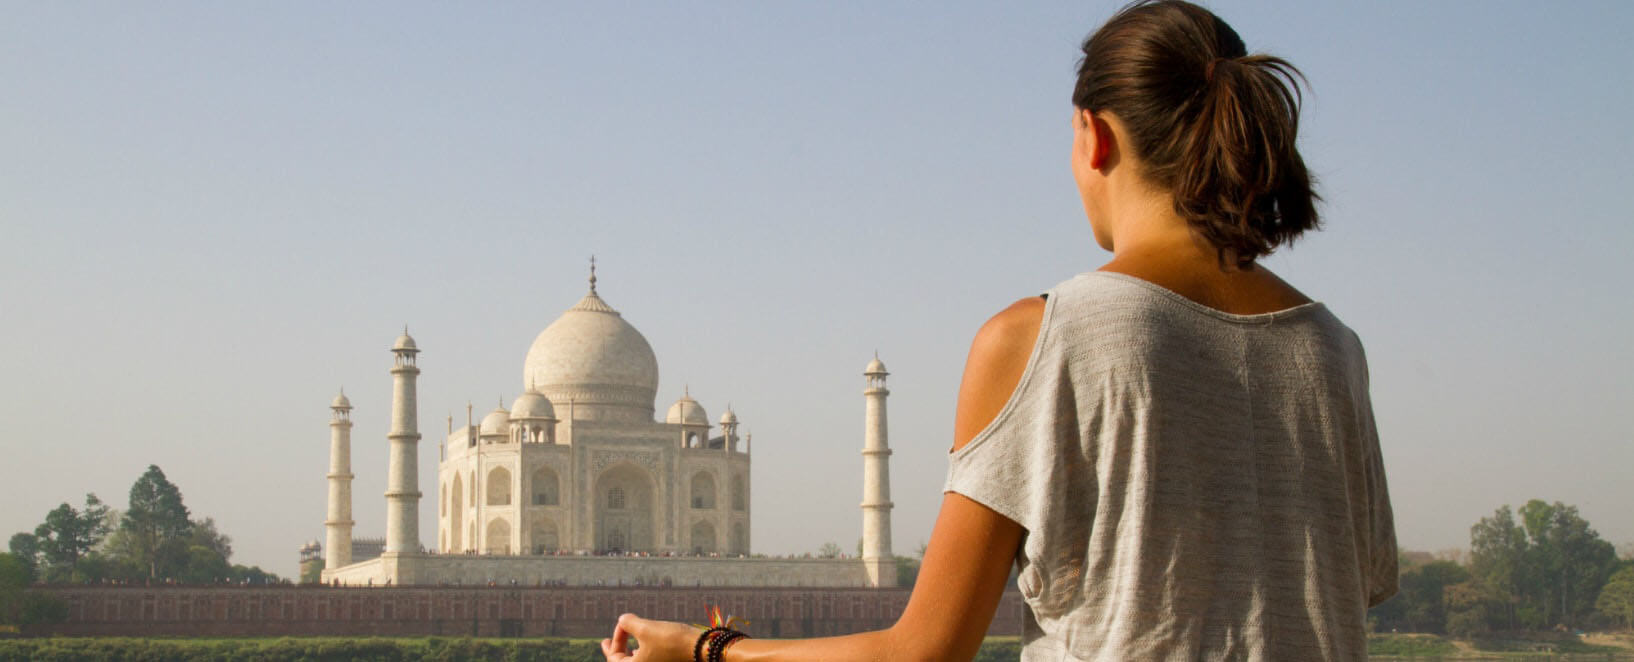 Yoga by Taj Mahal